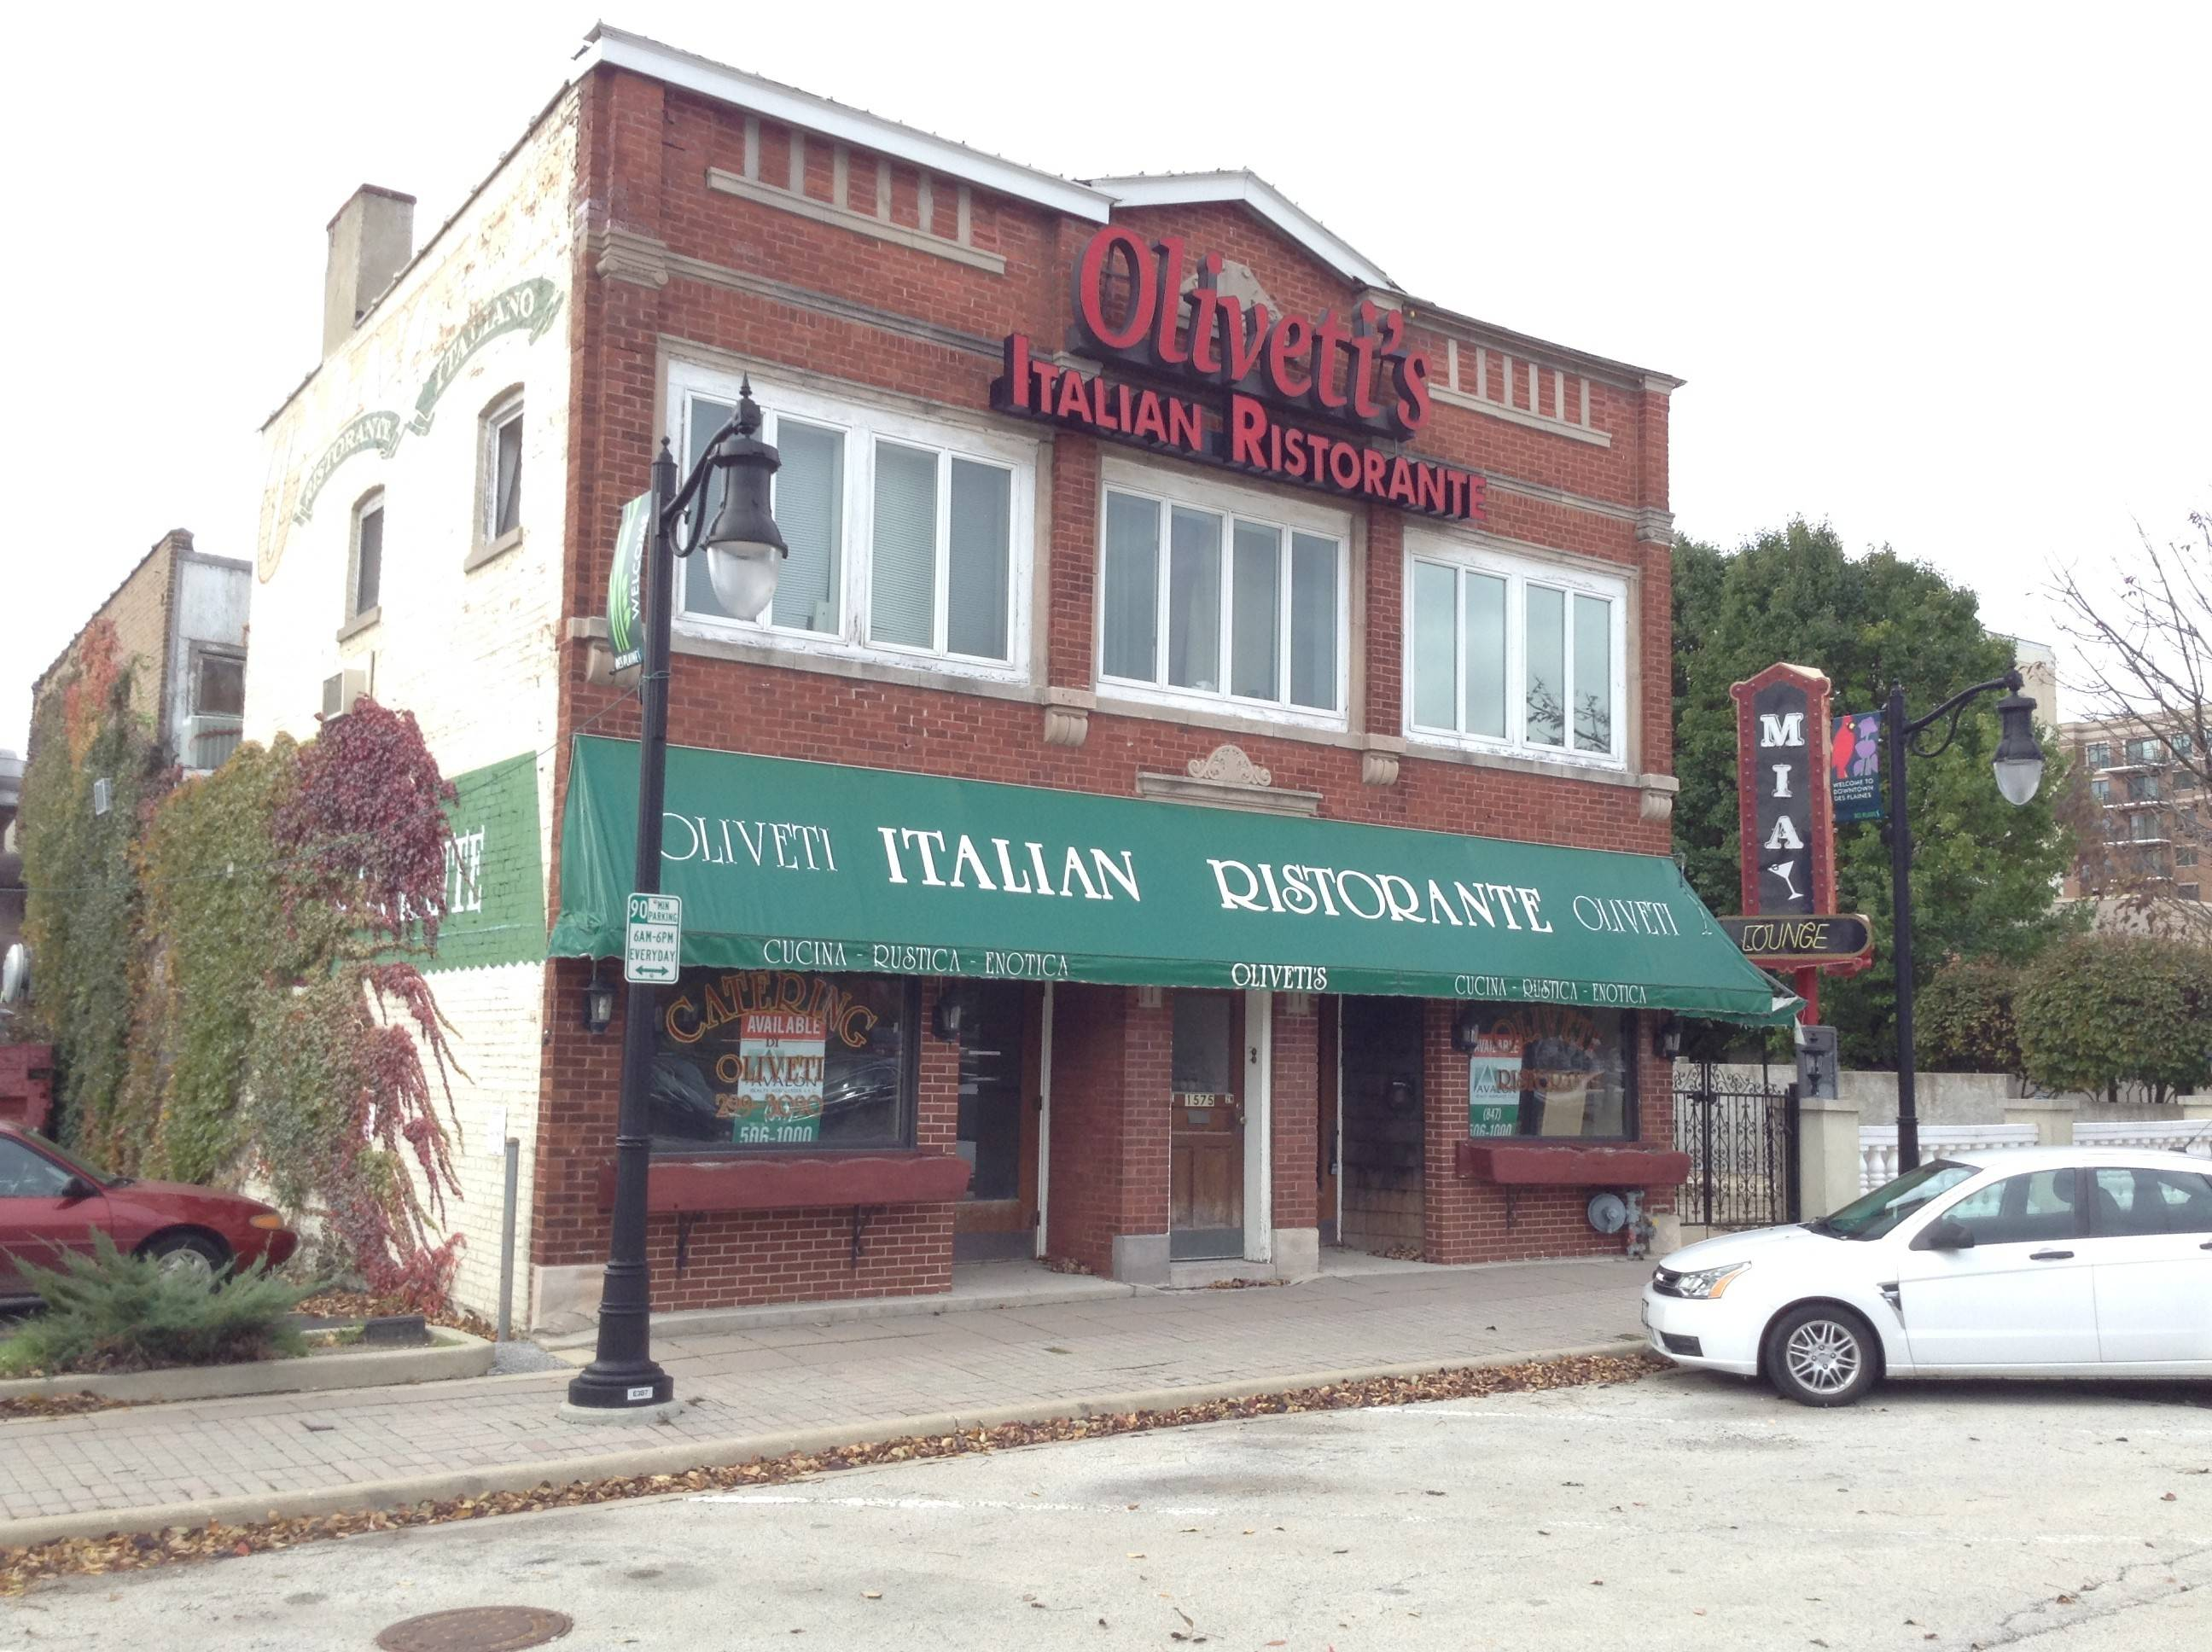 Firewater Saloon, a country-themed bar and restaurant with locations in Edison Park and Mount Greenwood, wants to open a third location at the former Olivetti's Italian Restaurant in downtown Des Plaines.